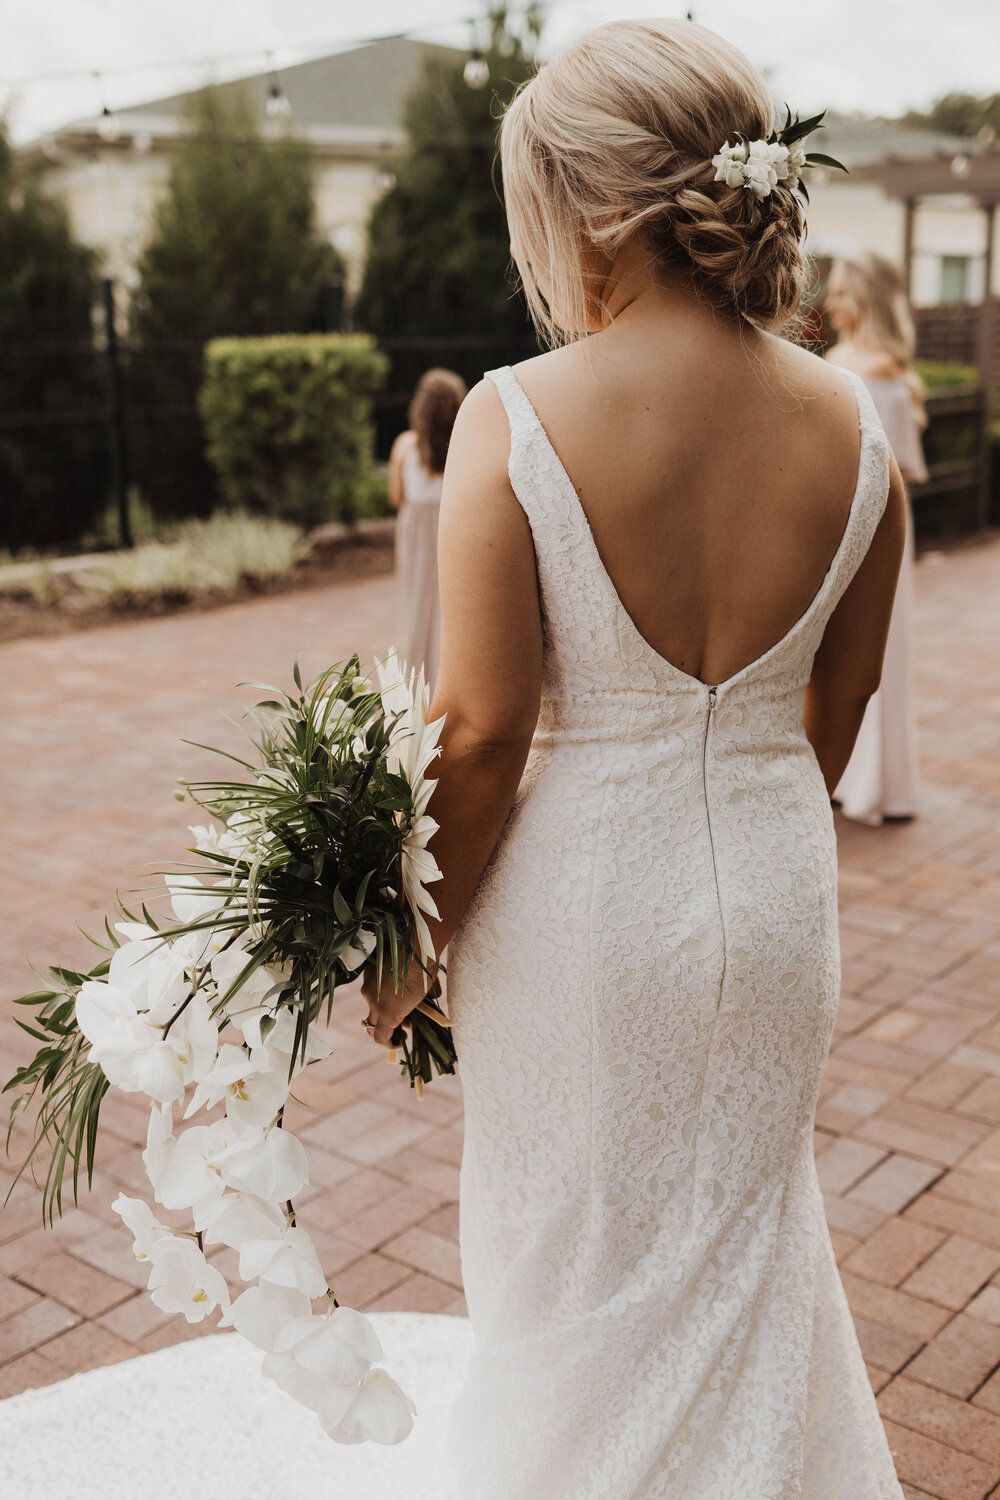 A Tropical Summer Wedding in Florida with Endless Tropical